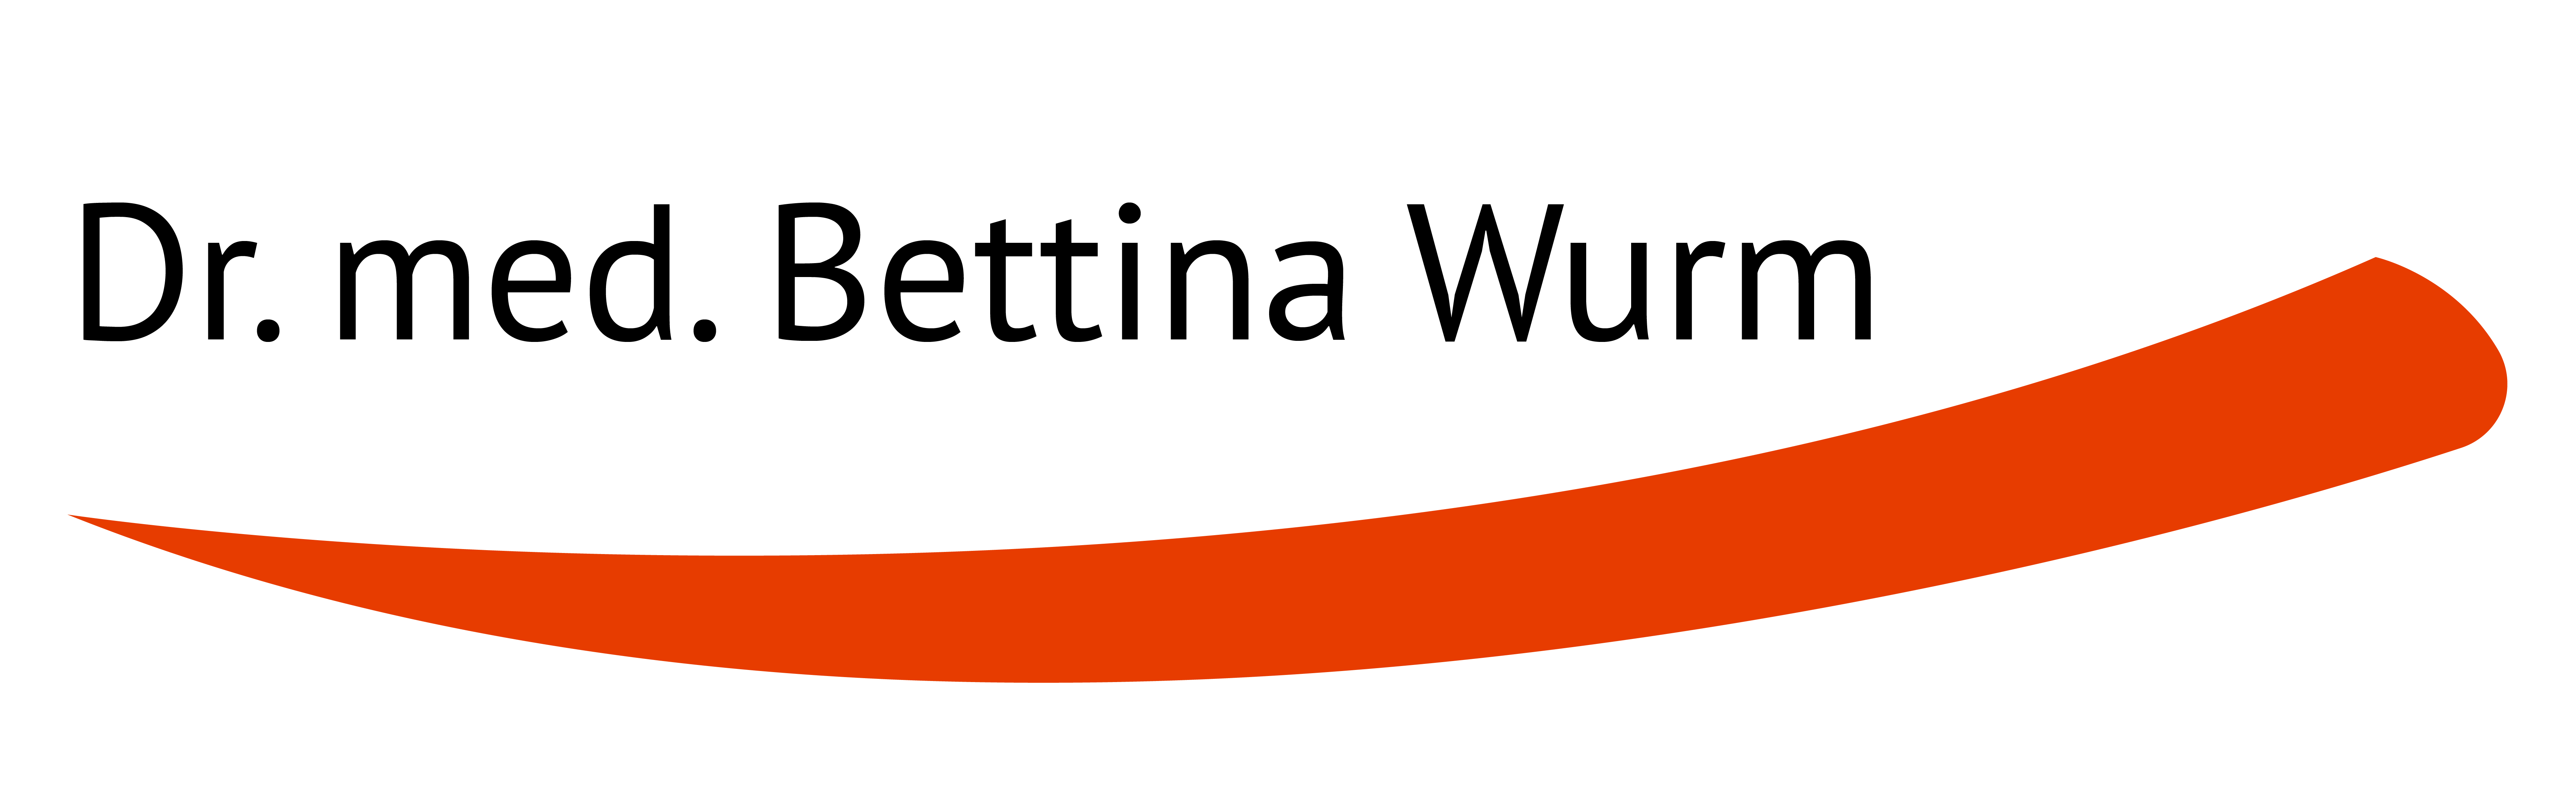 Bettina Wurm